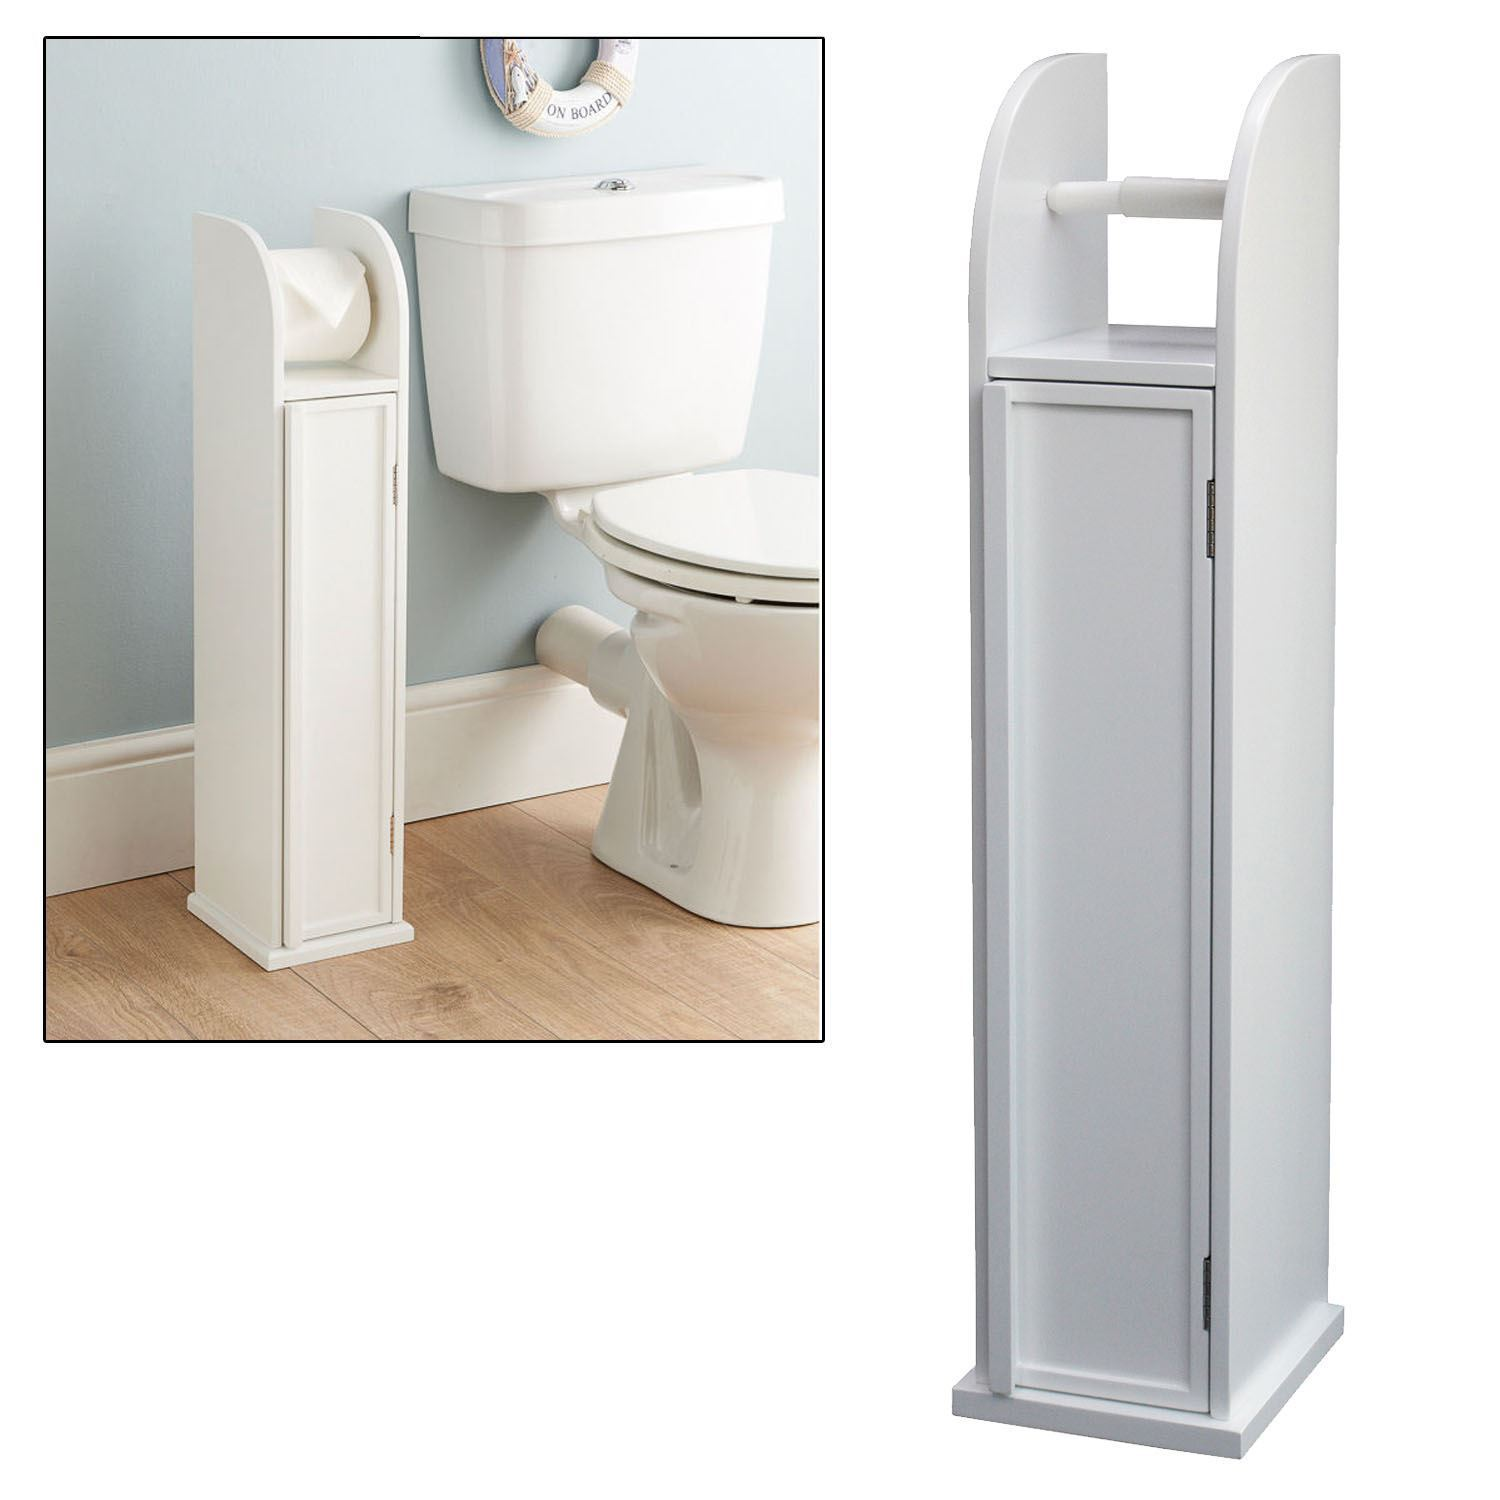 Plastic Toilet Roll Holder Free Standing White Storage Cabinet Toilet Roll Holder